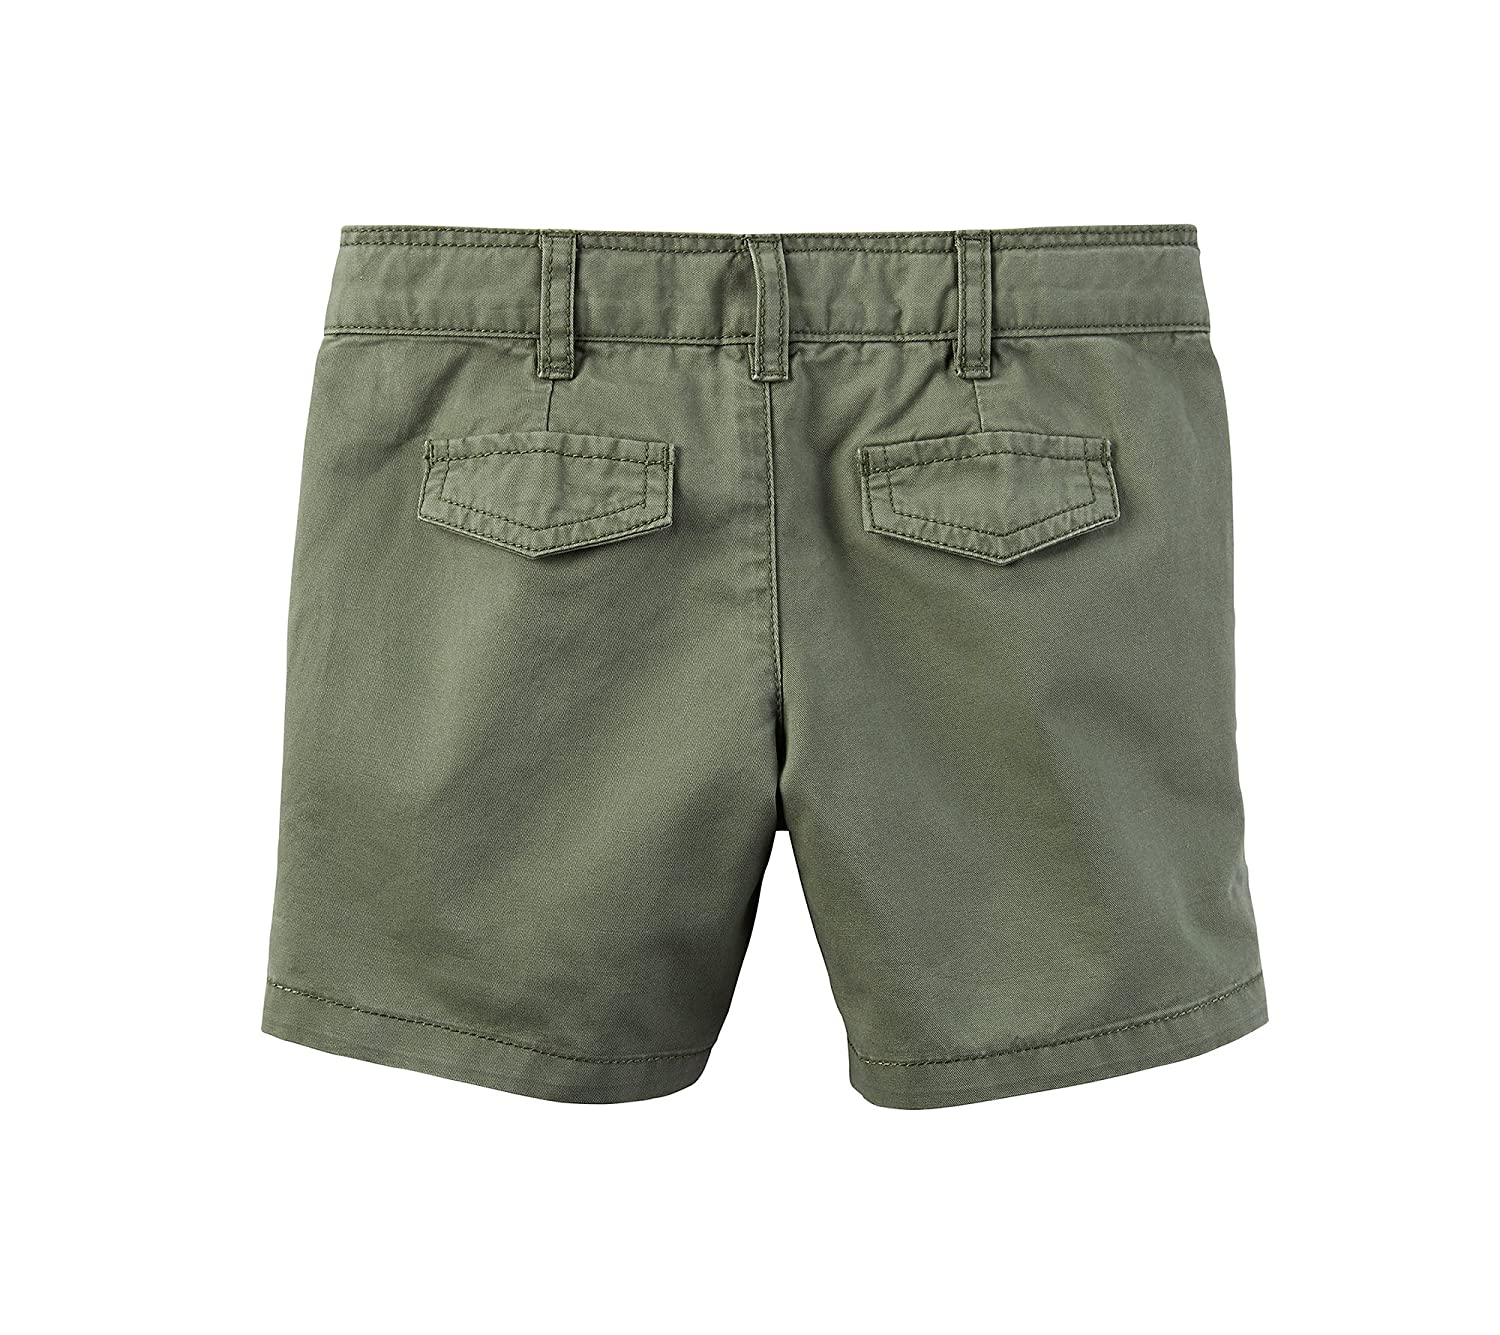 Carters Girls 2T-8 Roll Cuffed Shorts Olive 7